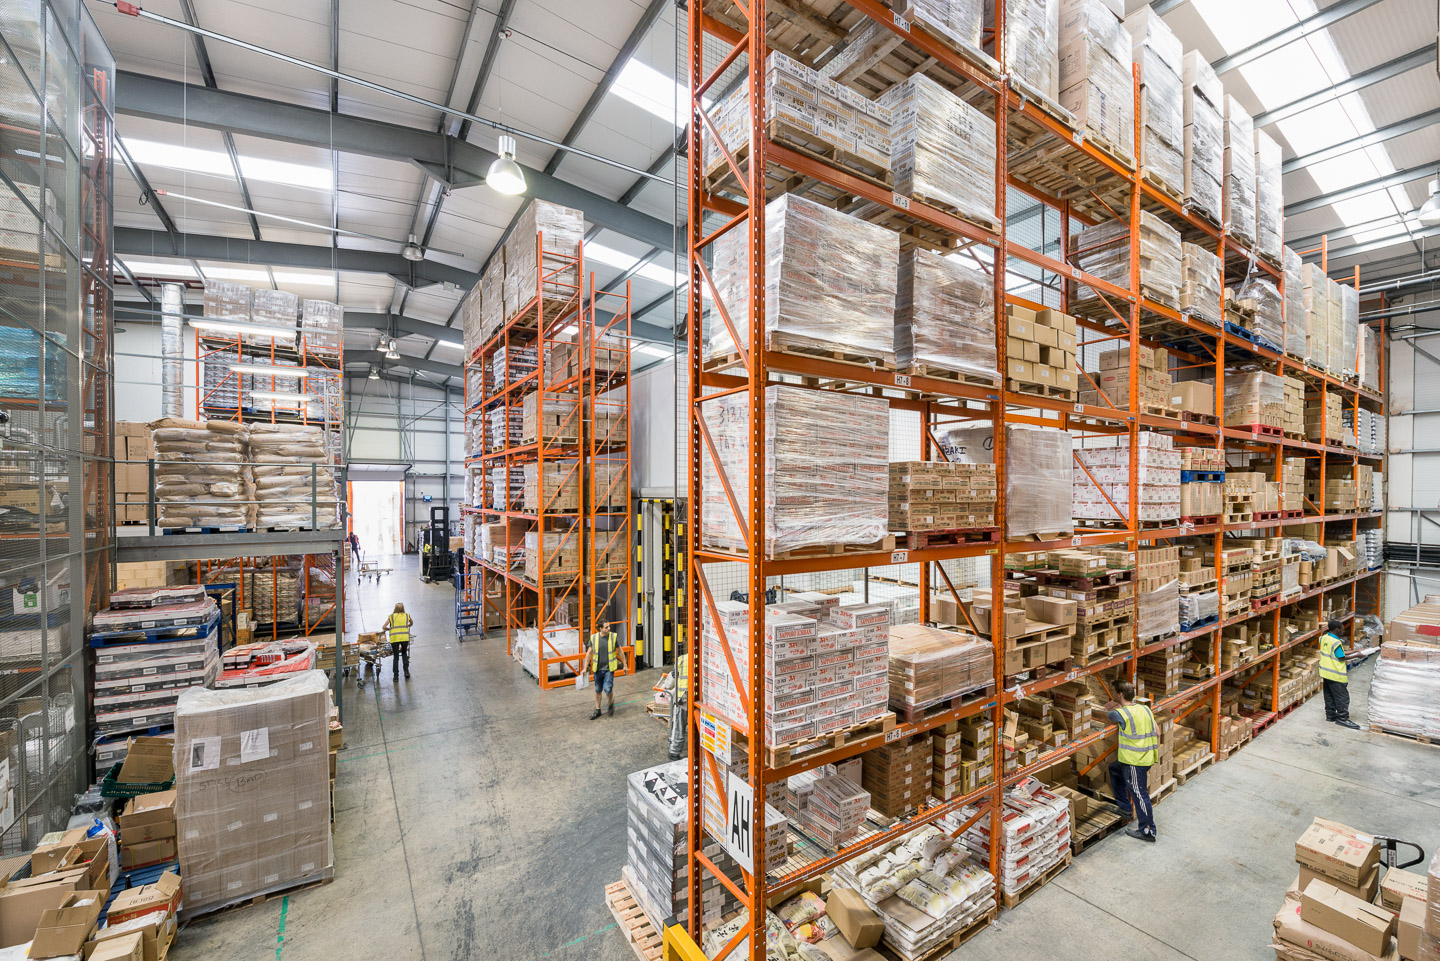 Image of Tazaki Foods Warehouse